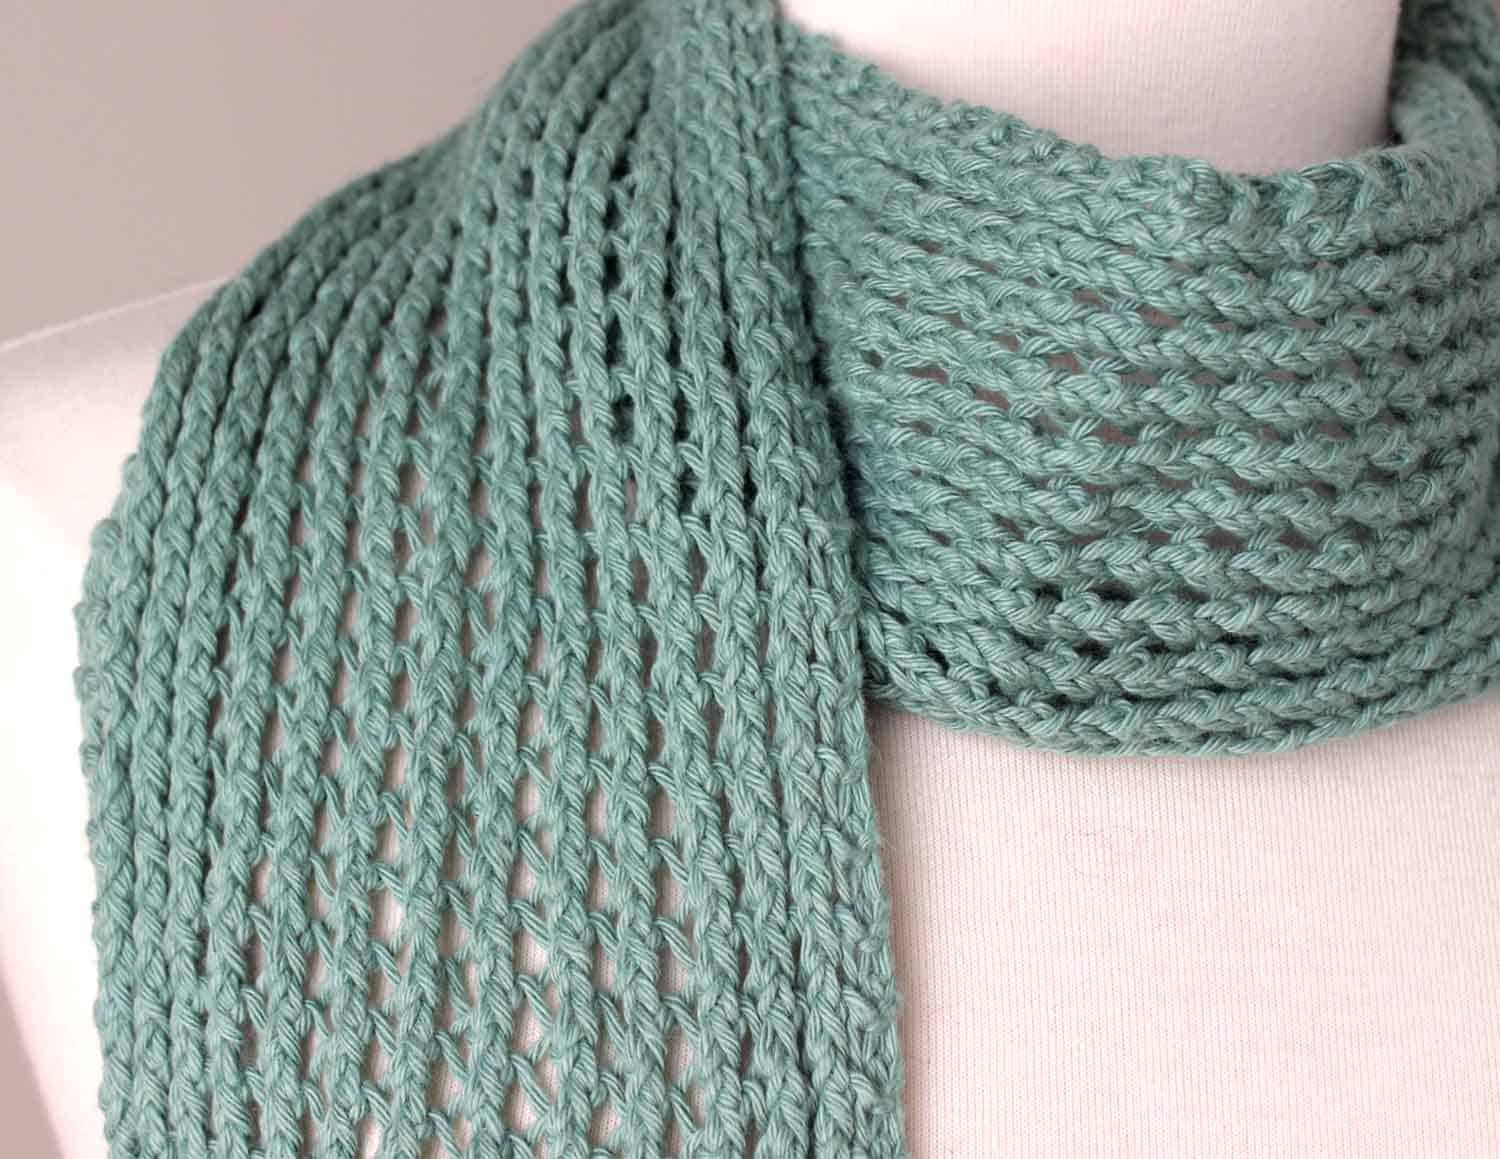 Knitting Summer Scarves : Knitting resources deux brins de maille